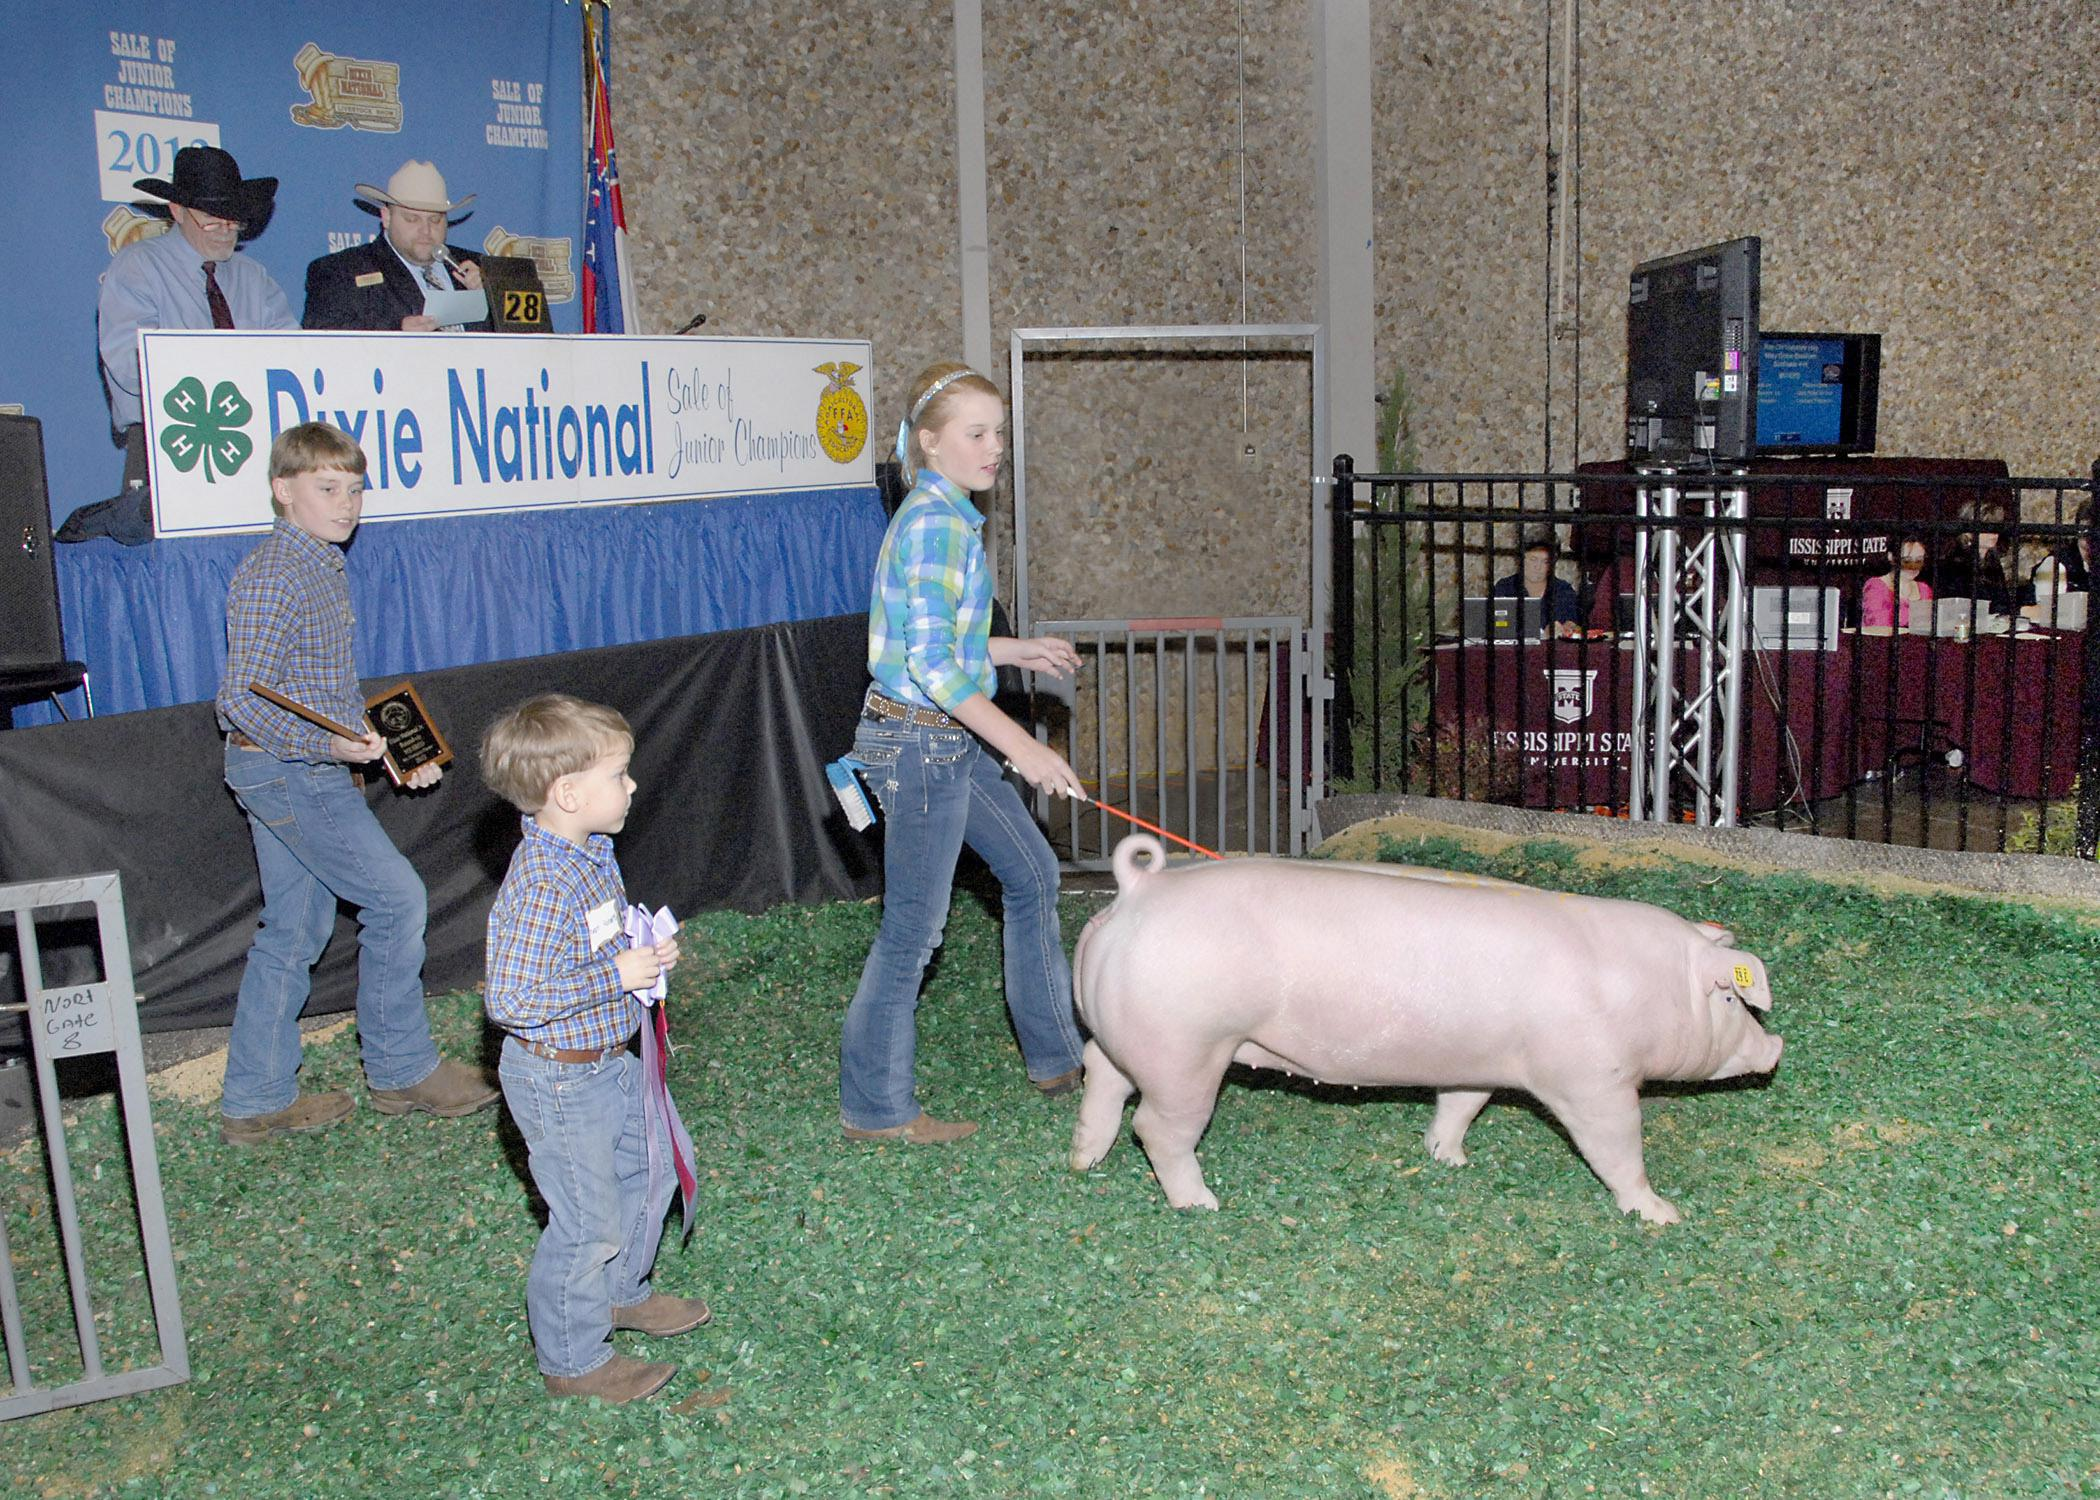 Twins James and Jillian Roberts of Belzoni are joined by their younger brother Joseph as they show their Reserve Champion Chester hog at the Dixie National Sale of Junior Champions in Jackson on Feb. 7, 2013. The twins participate in 4-H, the youth development program of the Mississippi State University Extension Service. (Photo by MSU Ag Communications/Tim McAlavy)